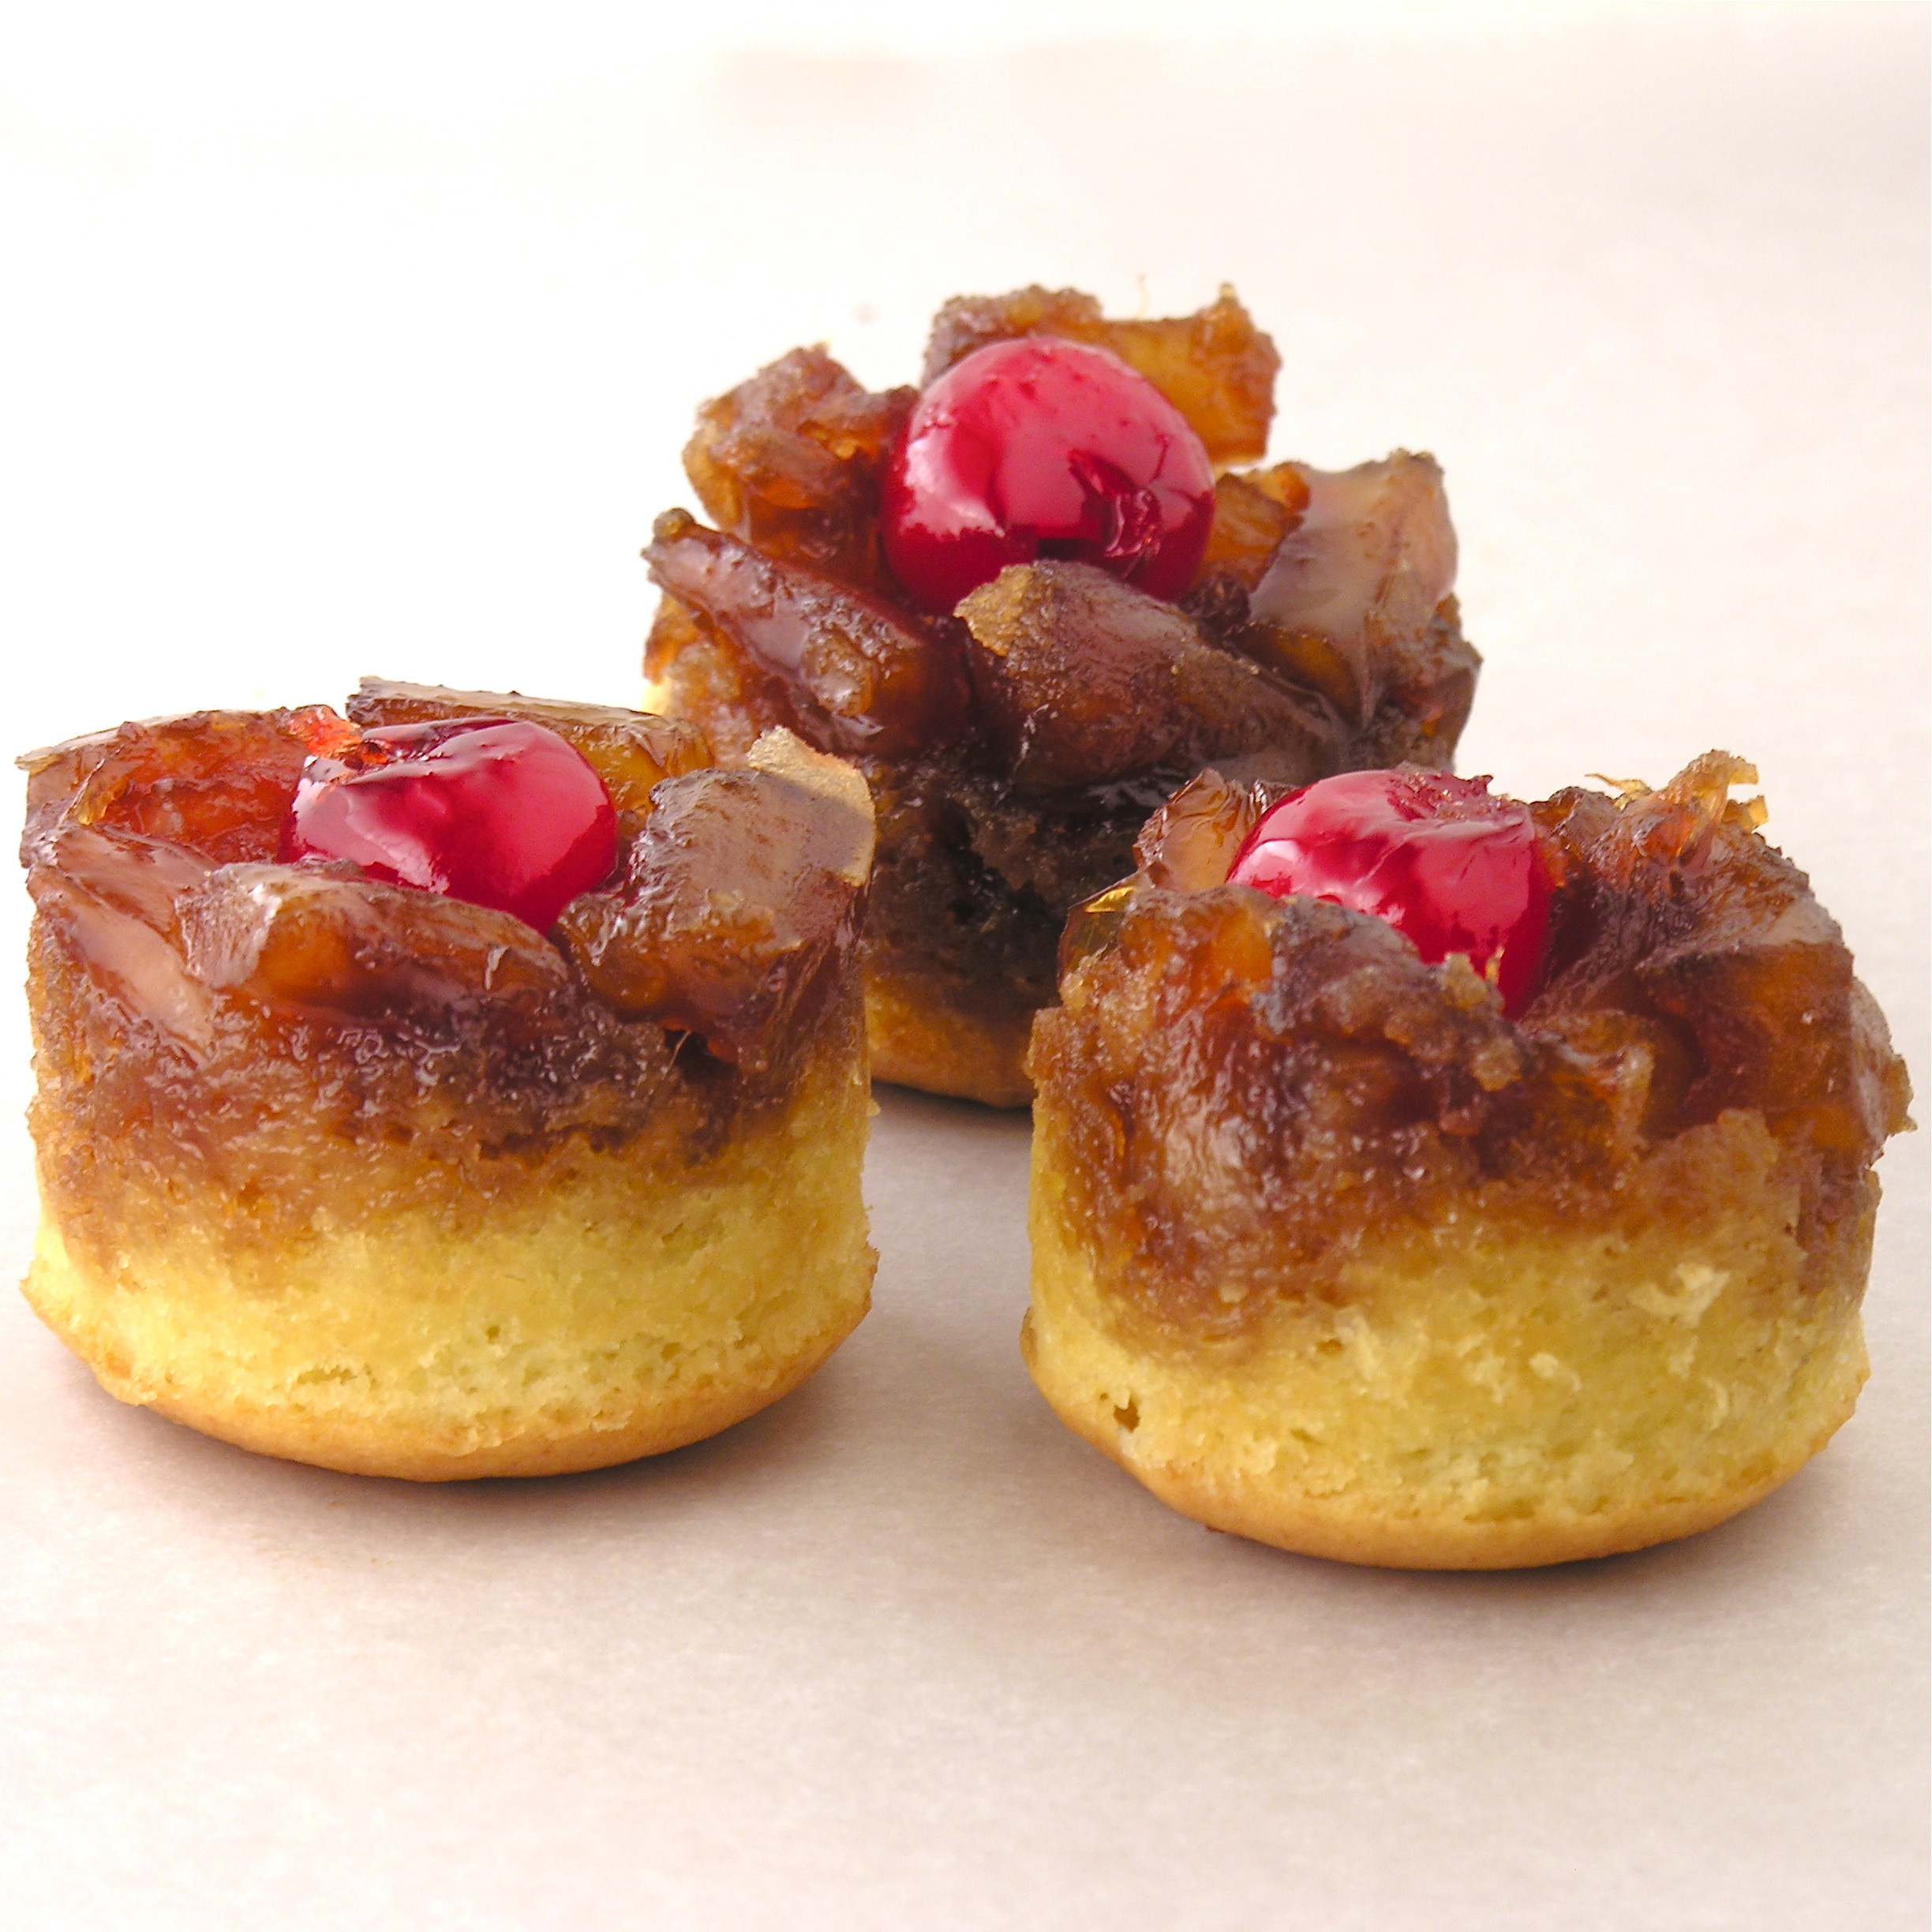 Mini Pineapple Upside Down Cake  Mini Pineapple Upside Down Cakes